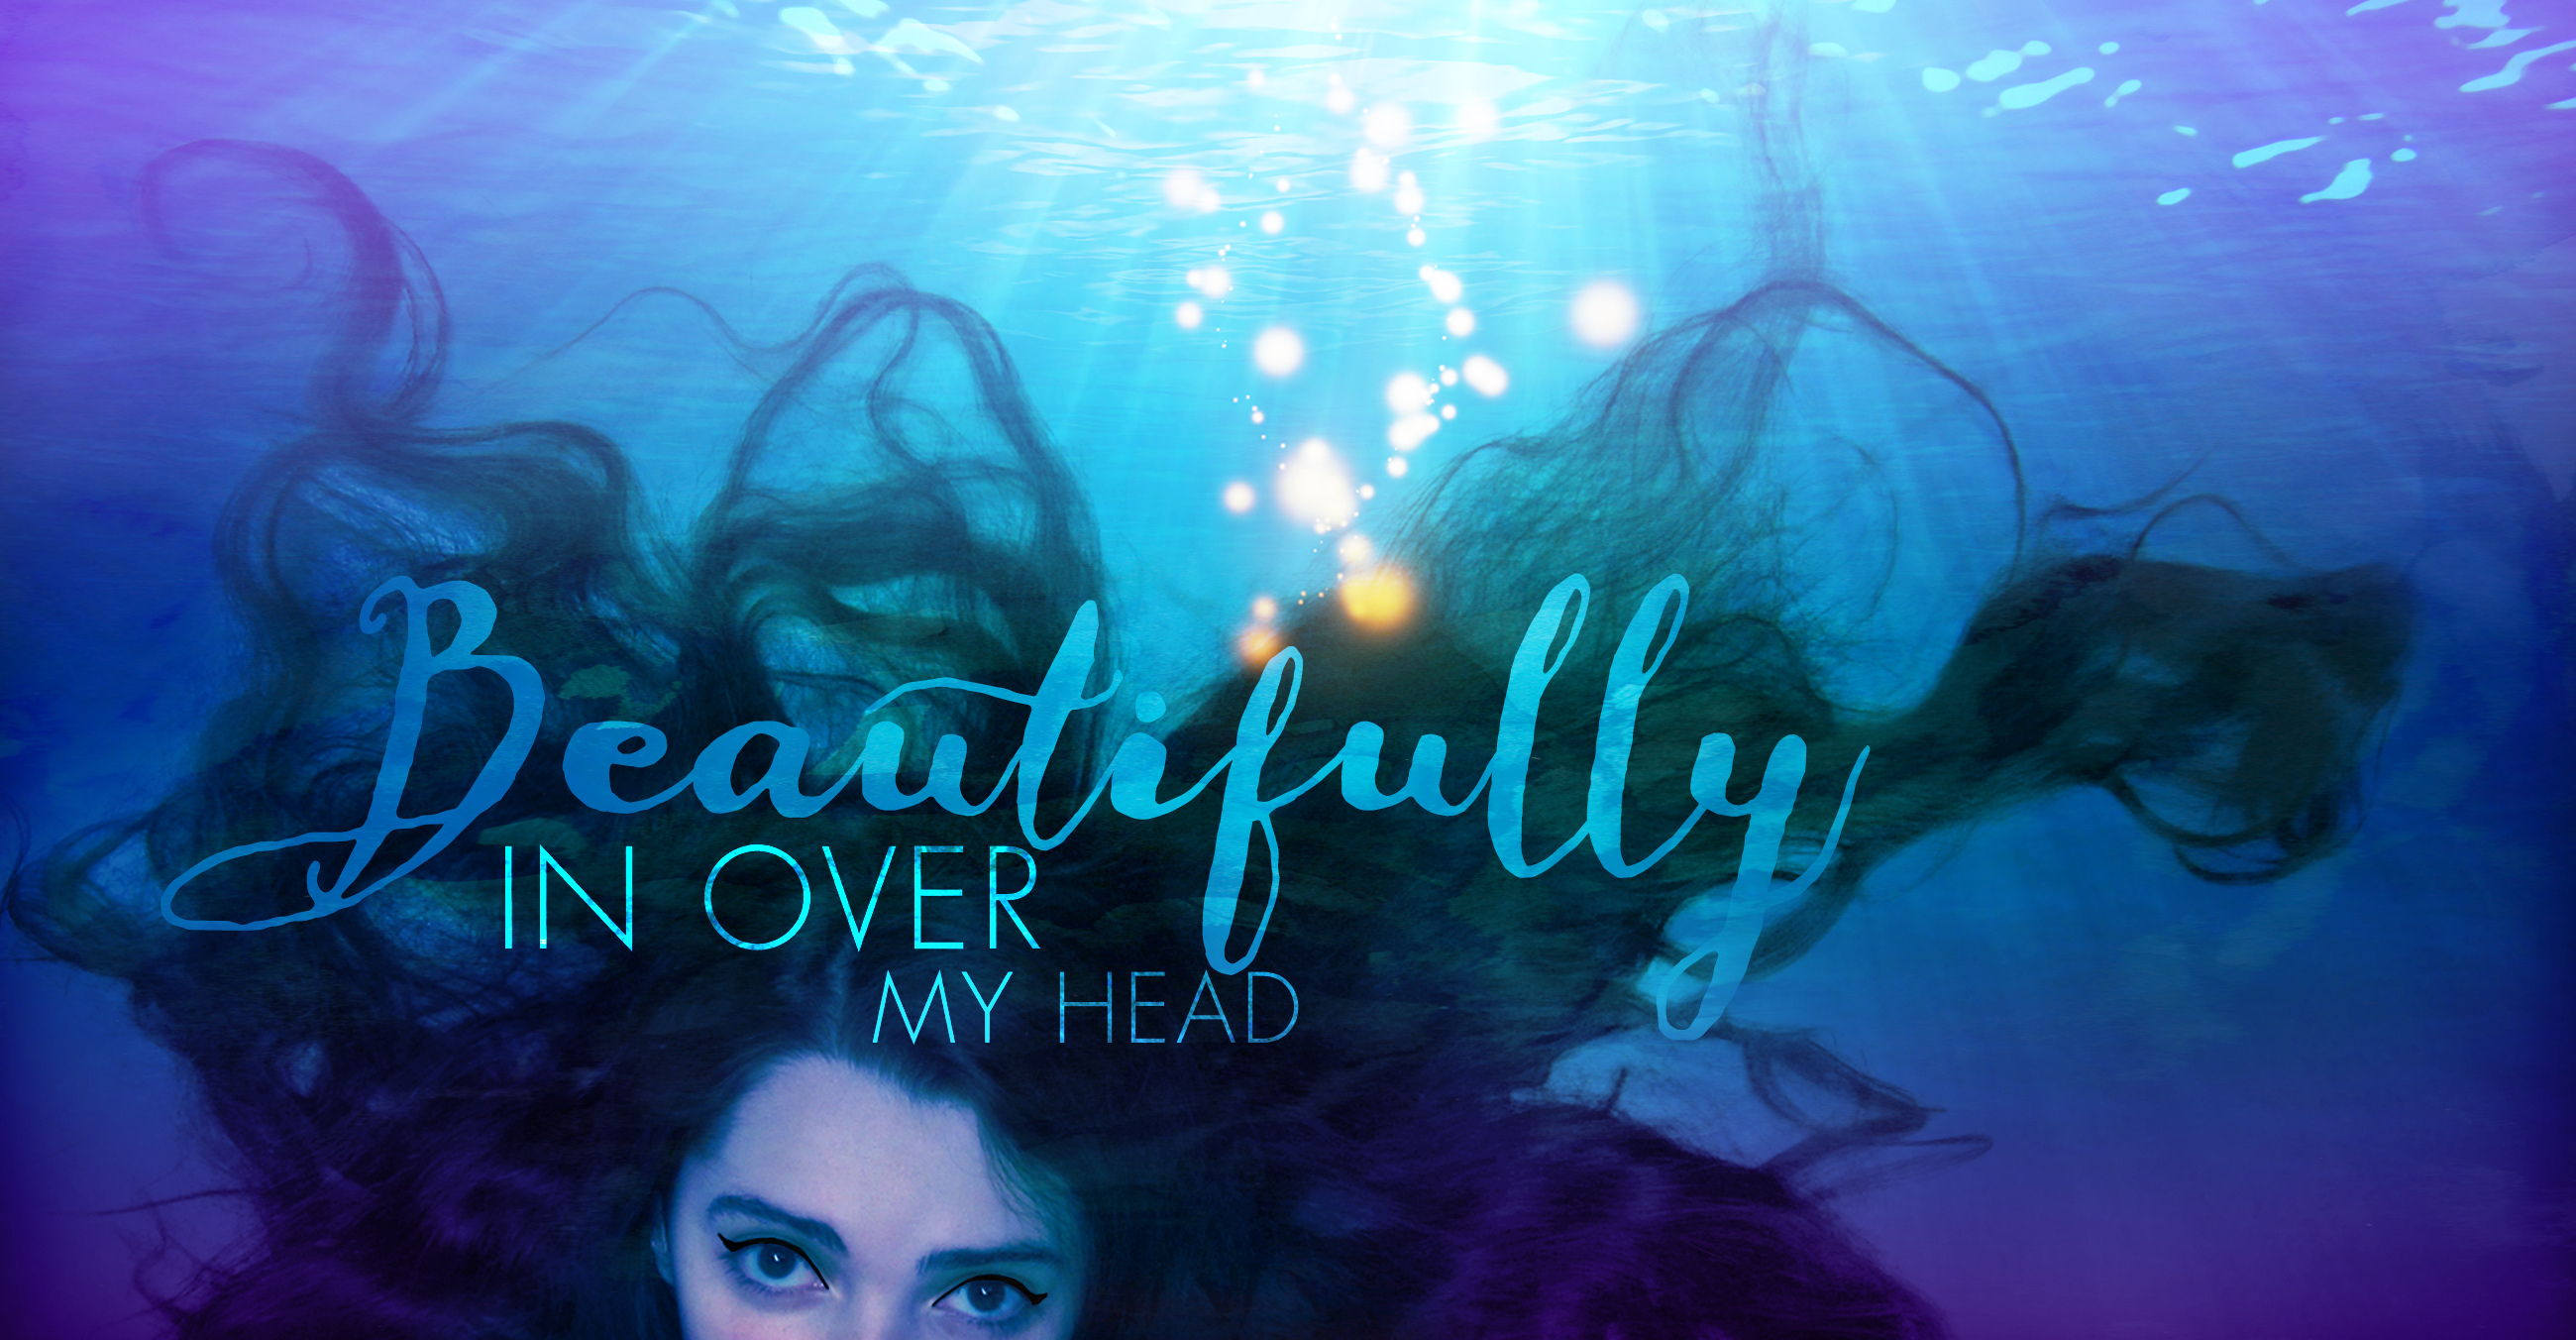 Beautifully in Over my Head